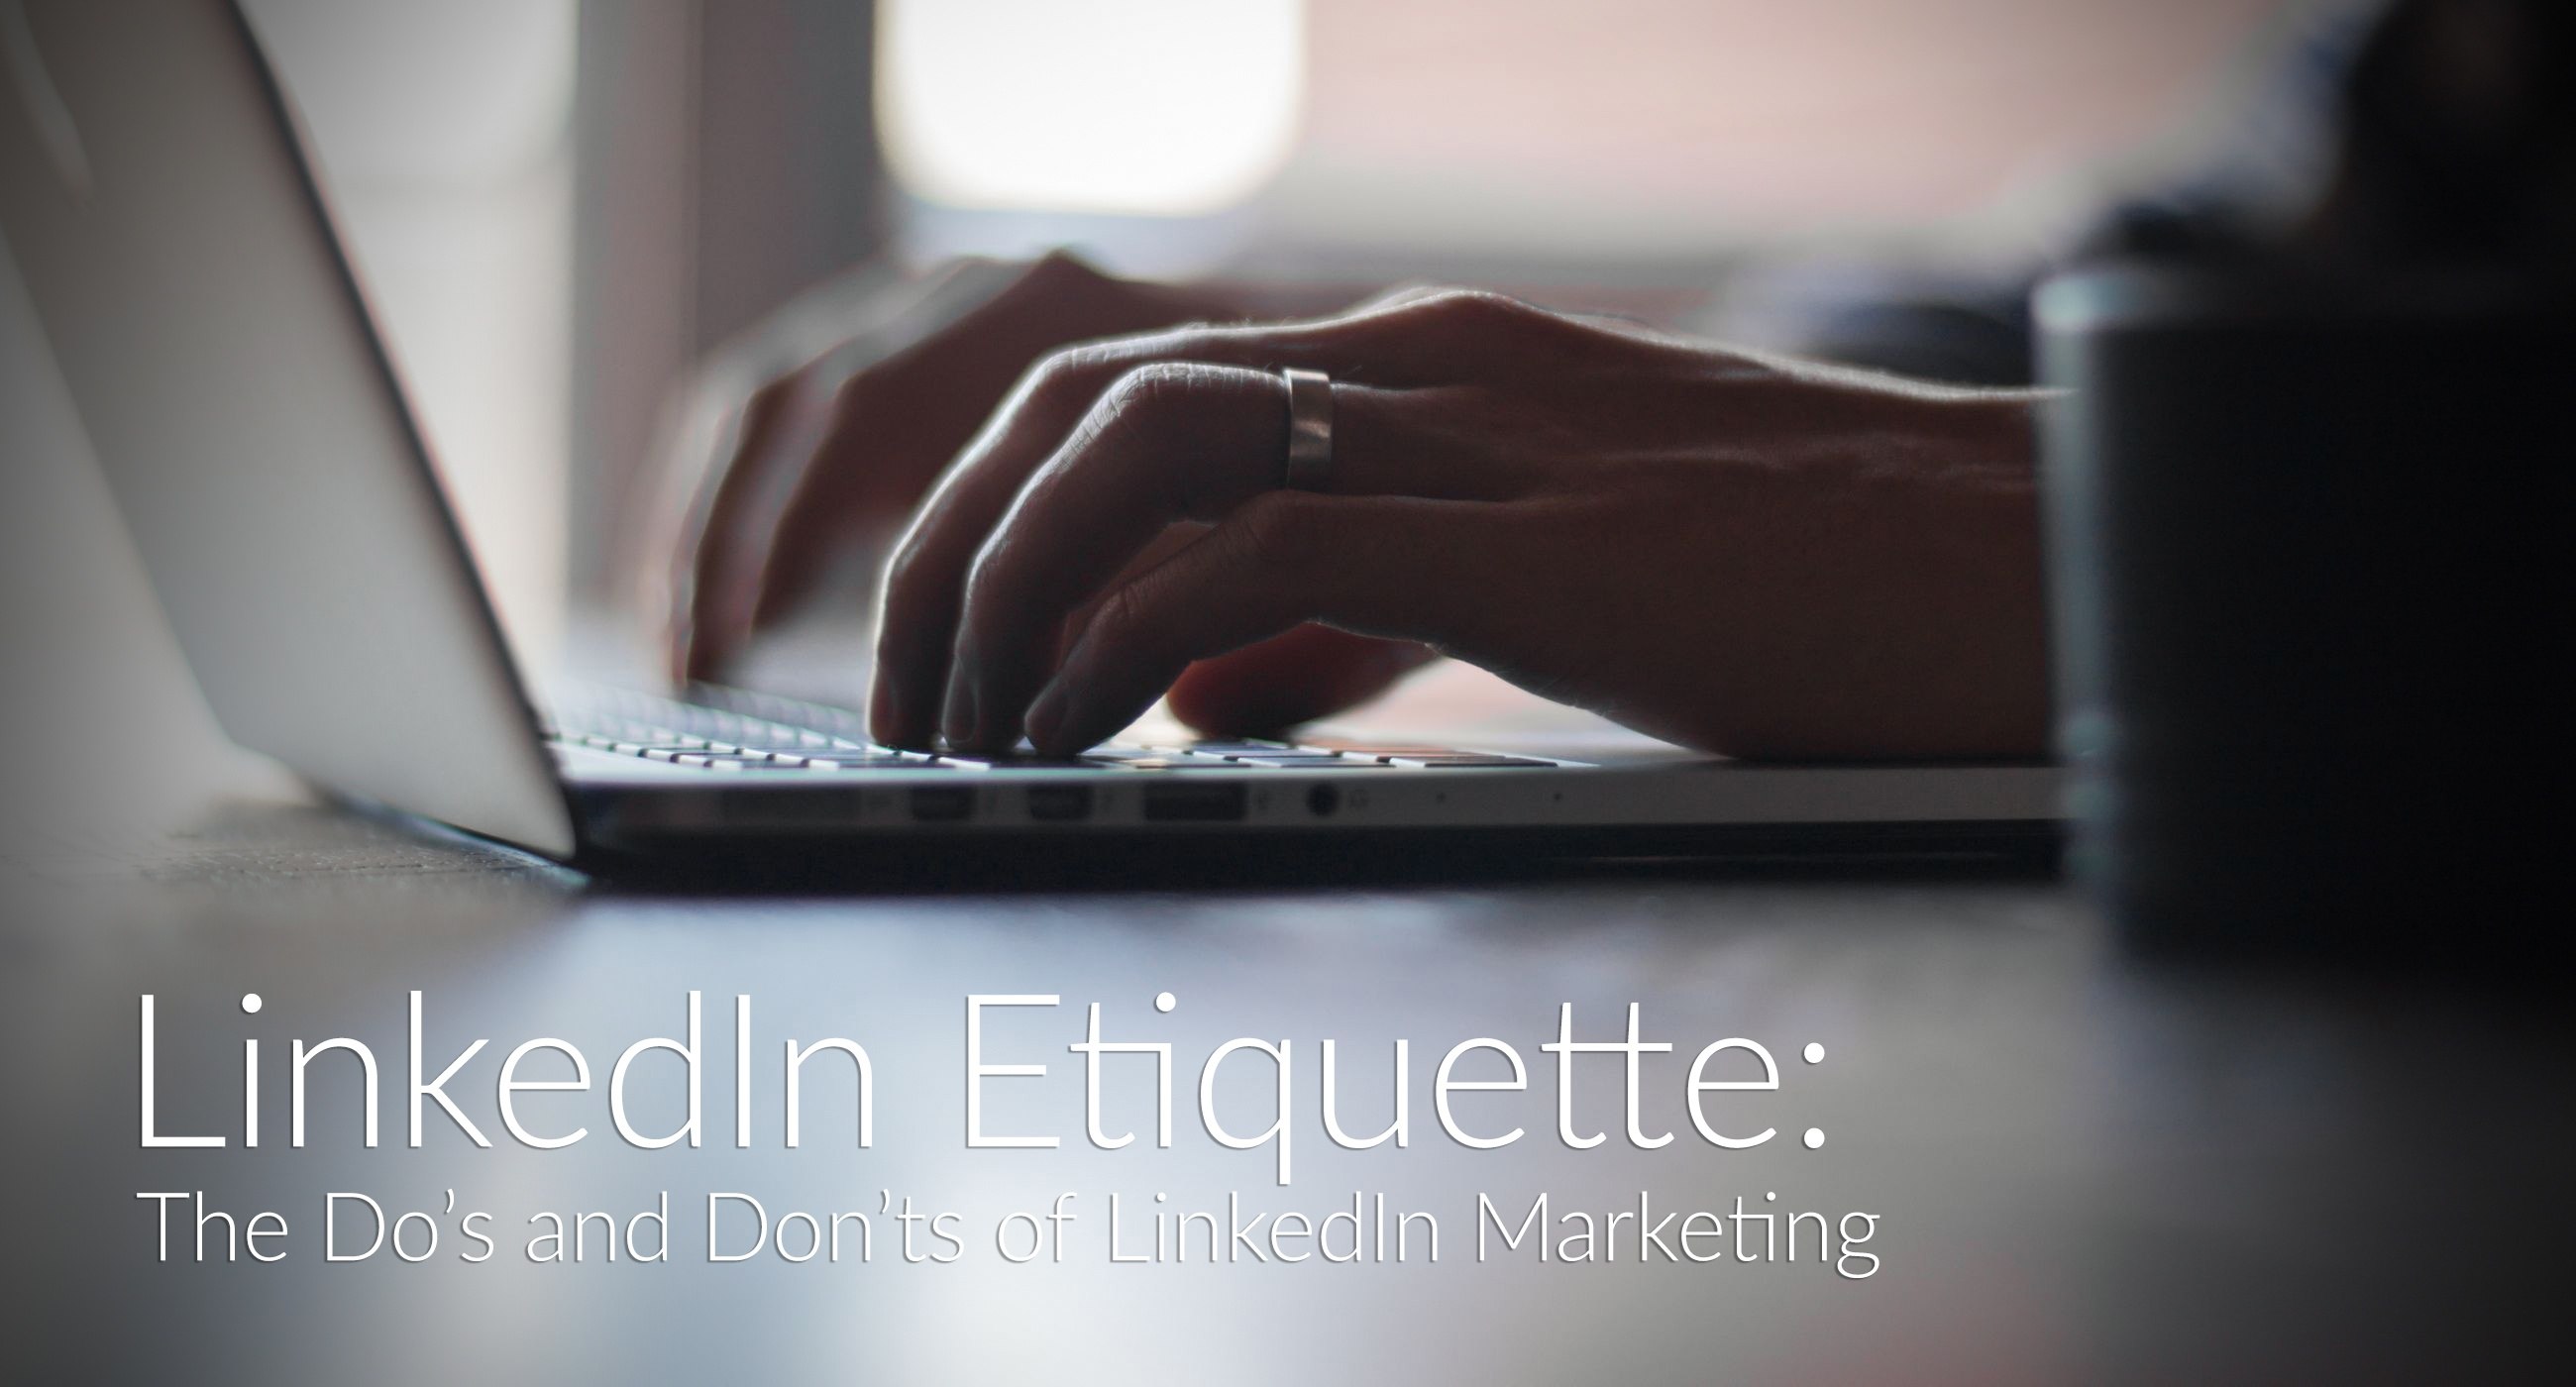 LinkedIn_Etiquette-_The_Dos_and_Donts_of_LinkedIn_Marketing_.jpg